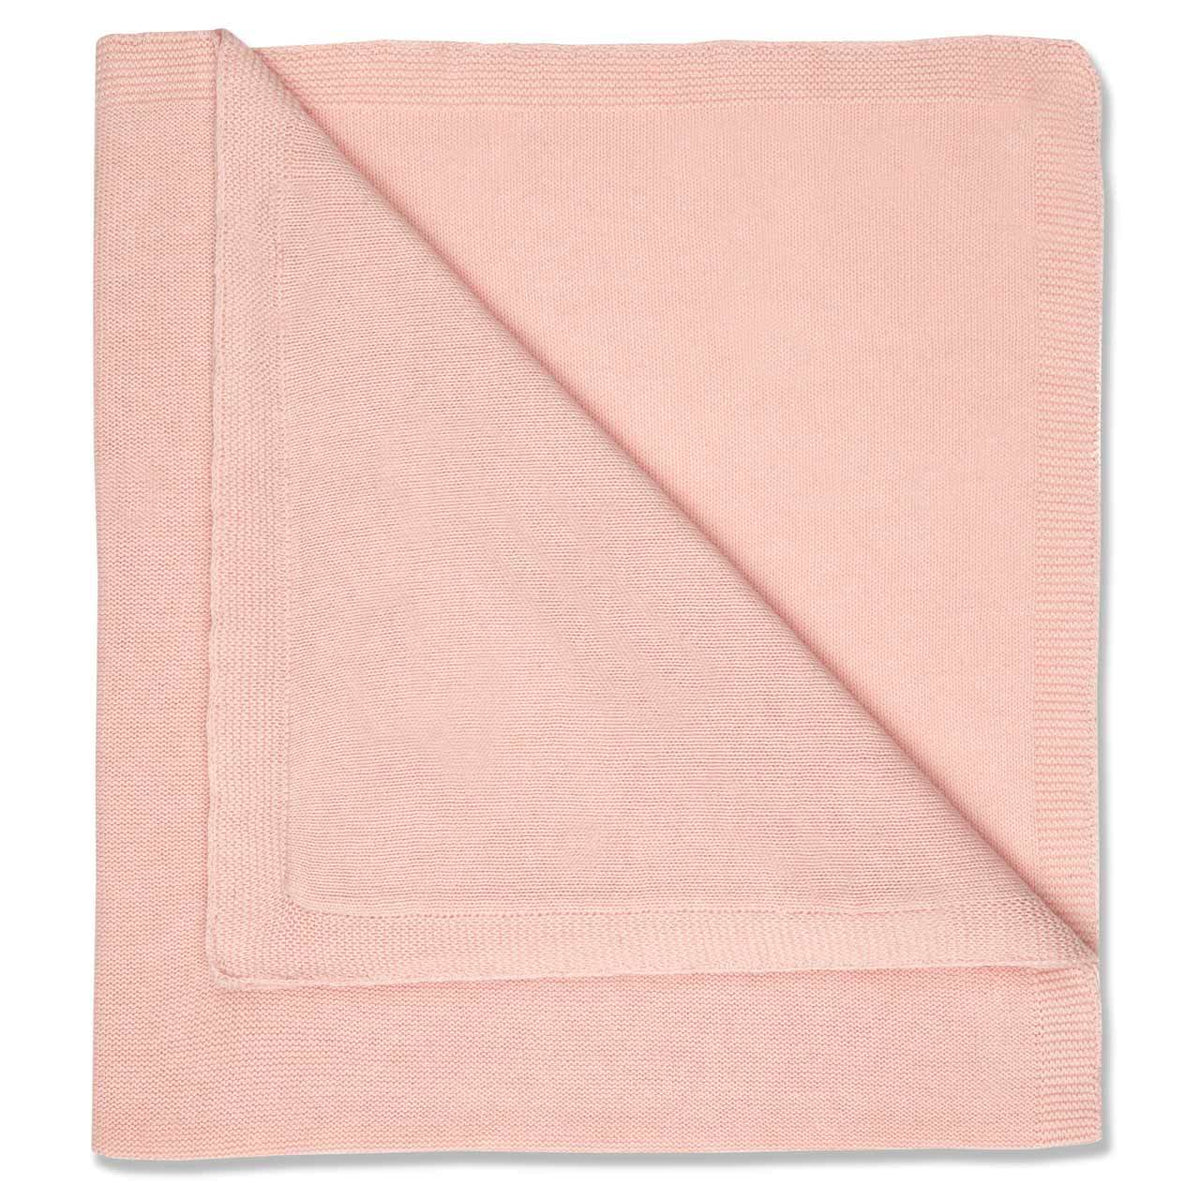 Knitted Blanket in Pale Pink